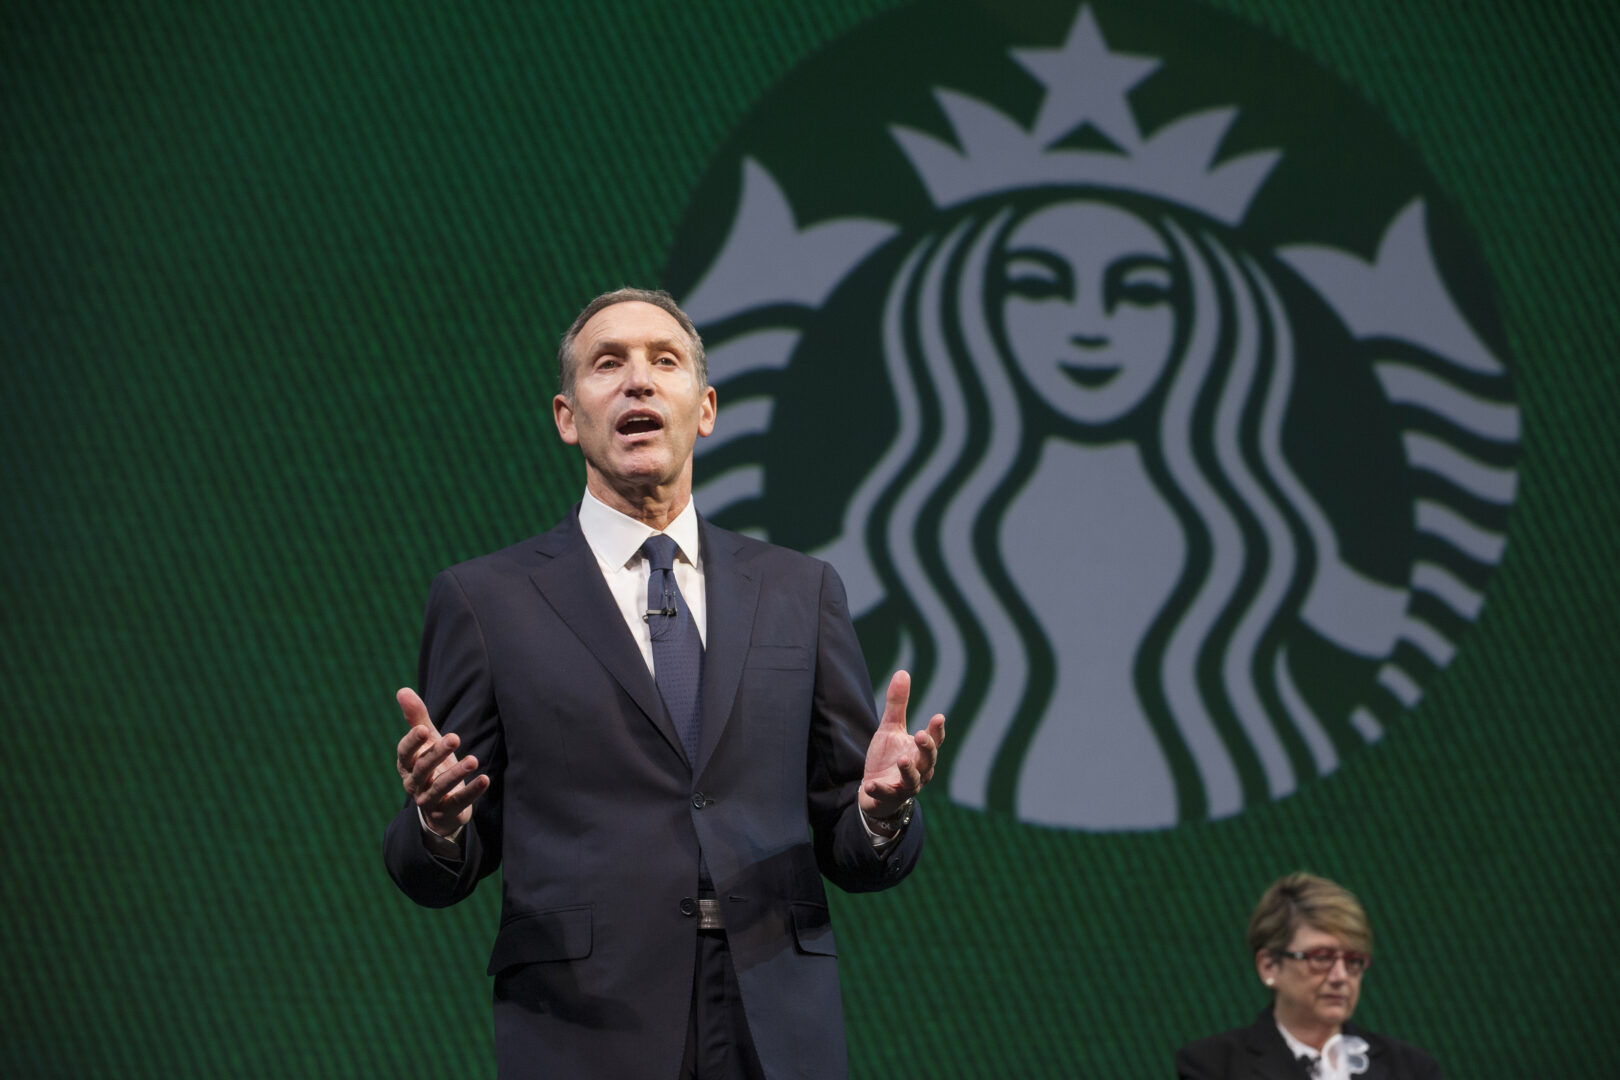 Howard Schultz makes a statement on diversity and equality during a spontaneous exchange at the Starbucks Annual Meeting of Shareholders in 2013